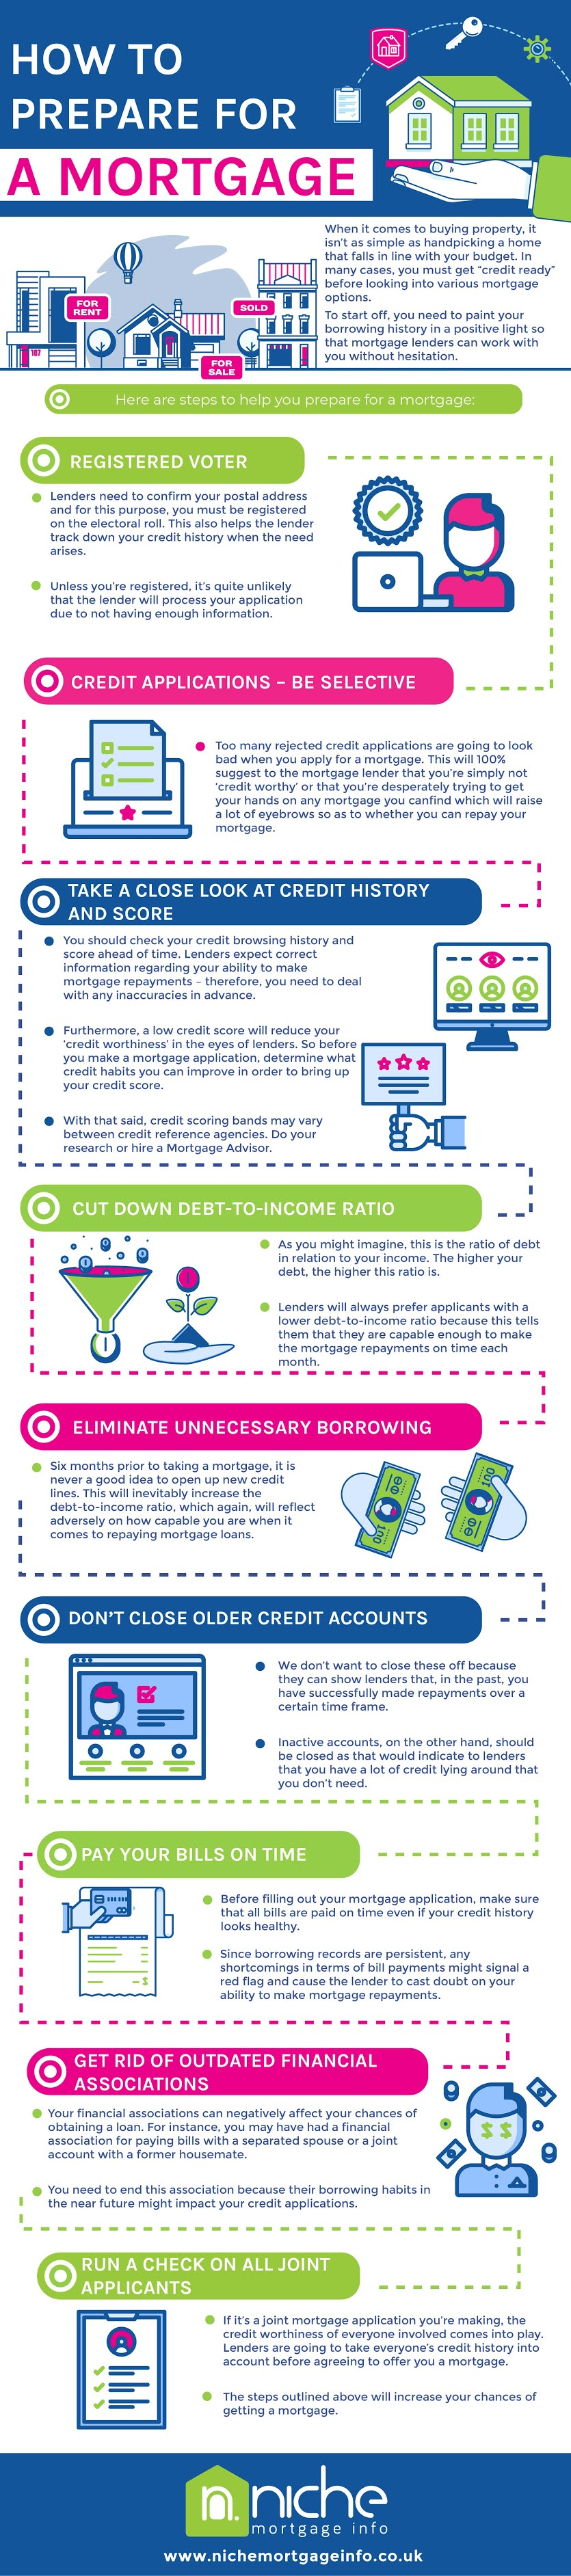 How to Prepare for a Mortgage #infographic